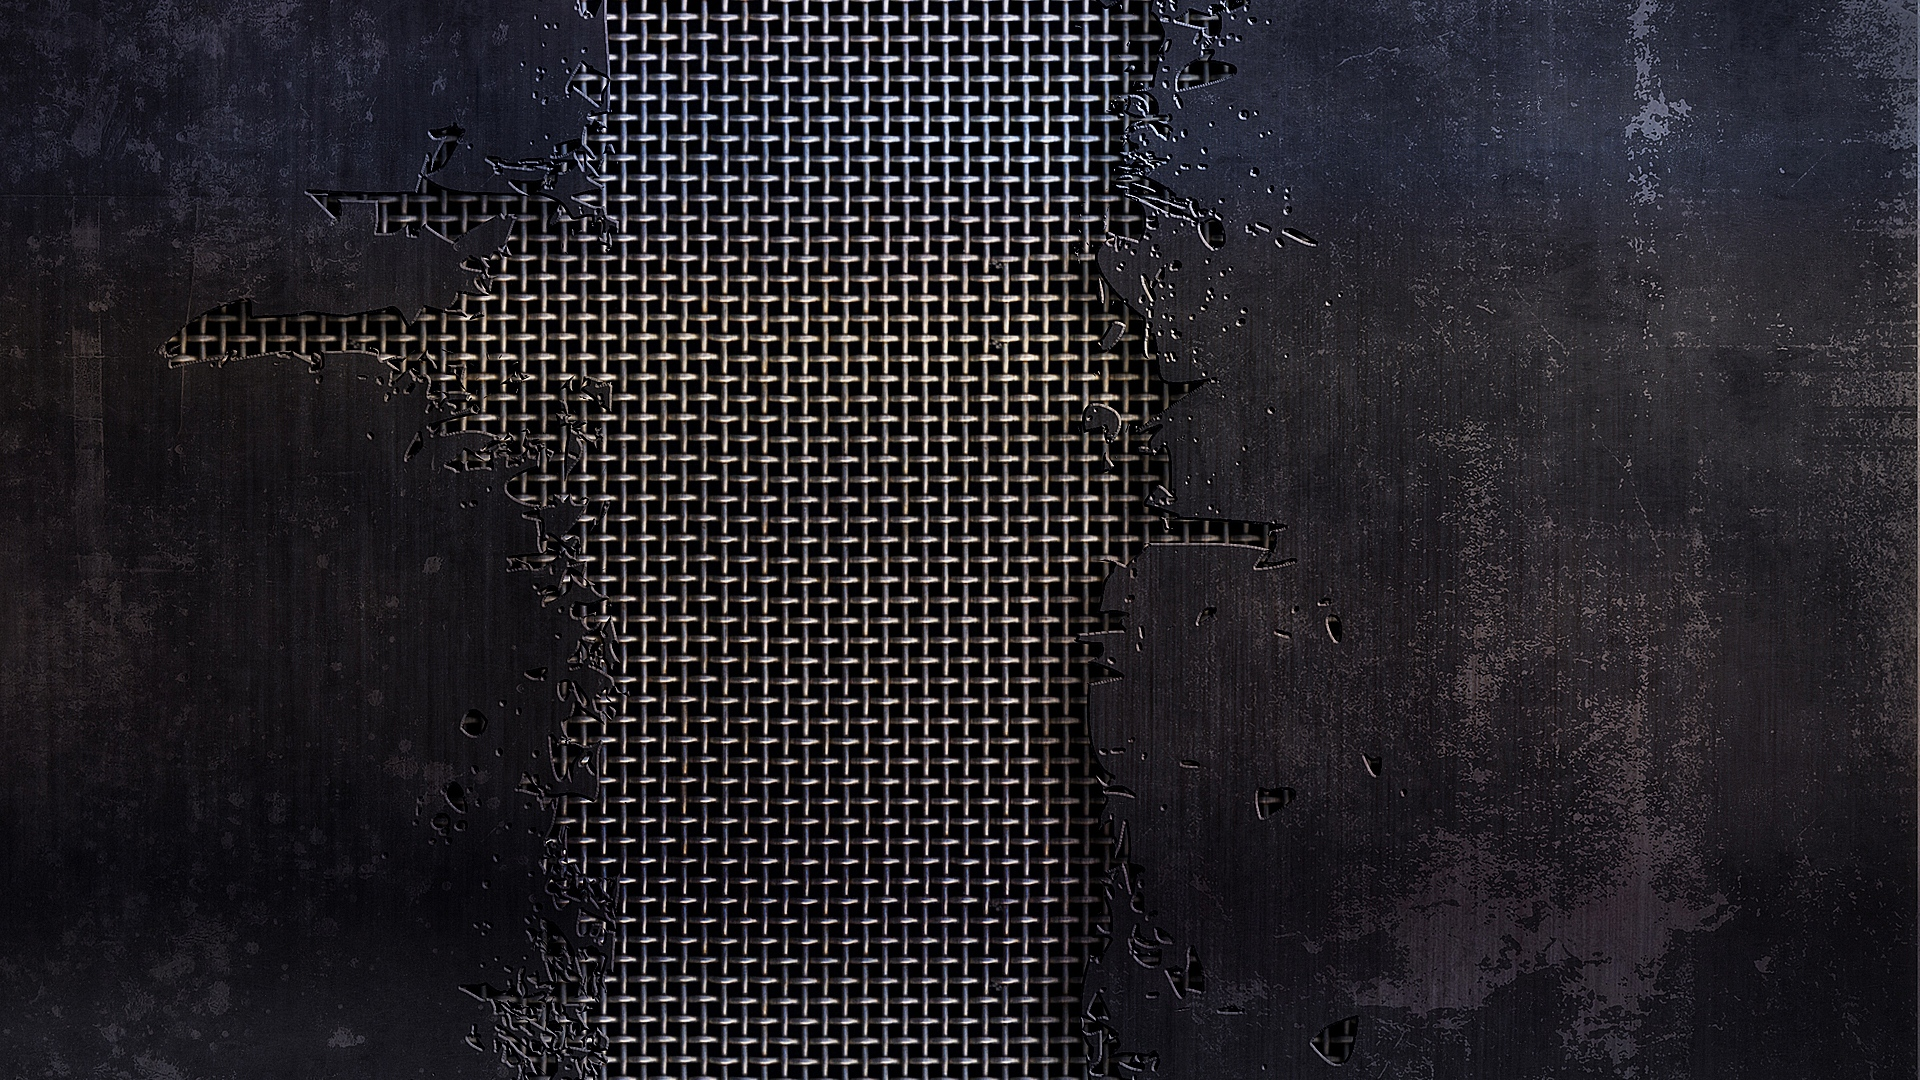 Get The Latest Metal Mesh Cracks News Pictures And Videos Learn All About From Wallpapers4uorg Your Wallpaper Source